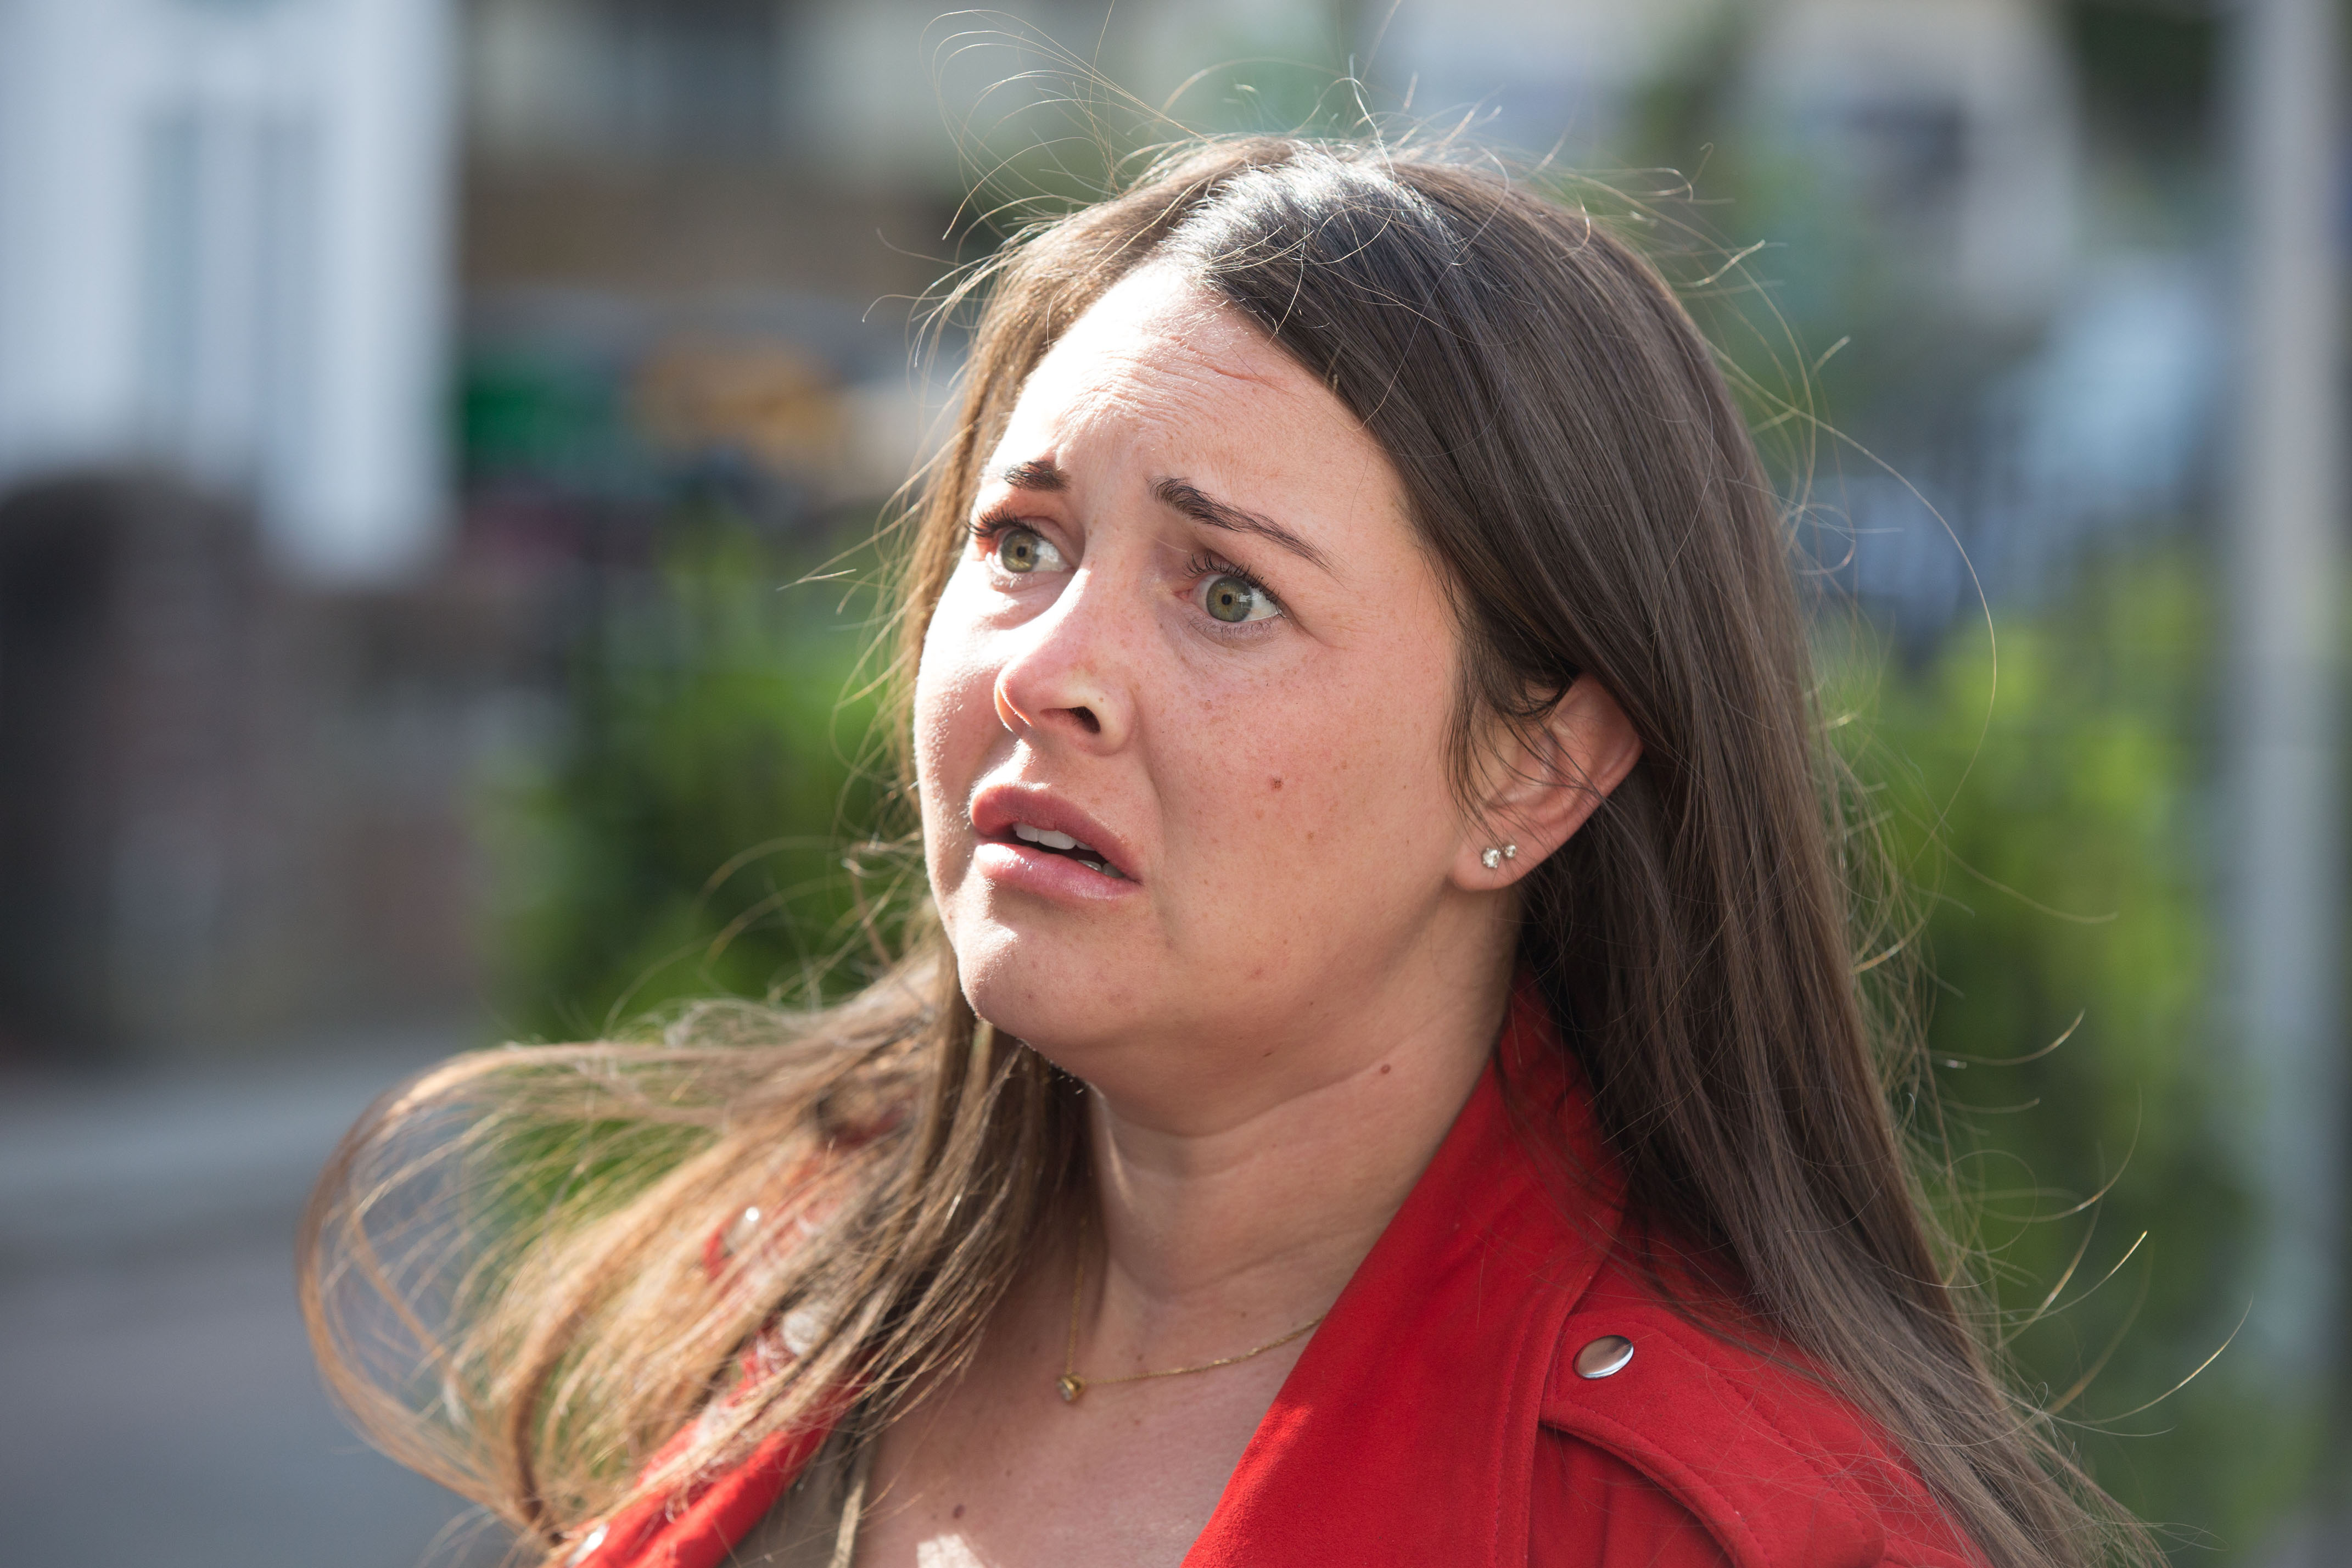 EastEnders' Lacey Turner has confirmed that she will return as Stacey Fowler